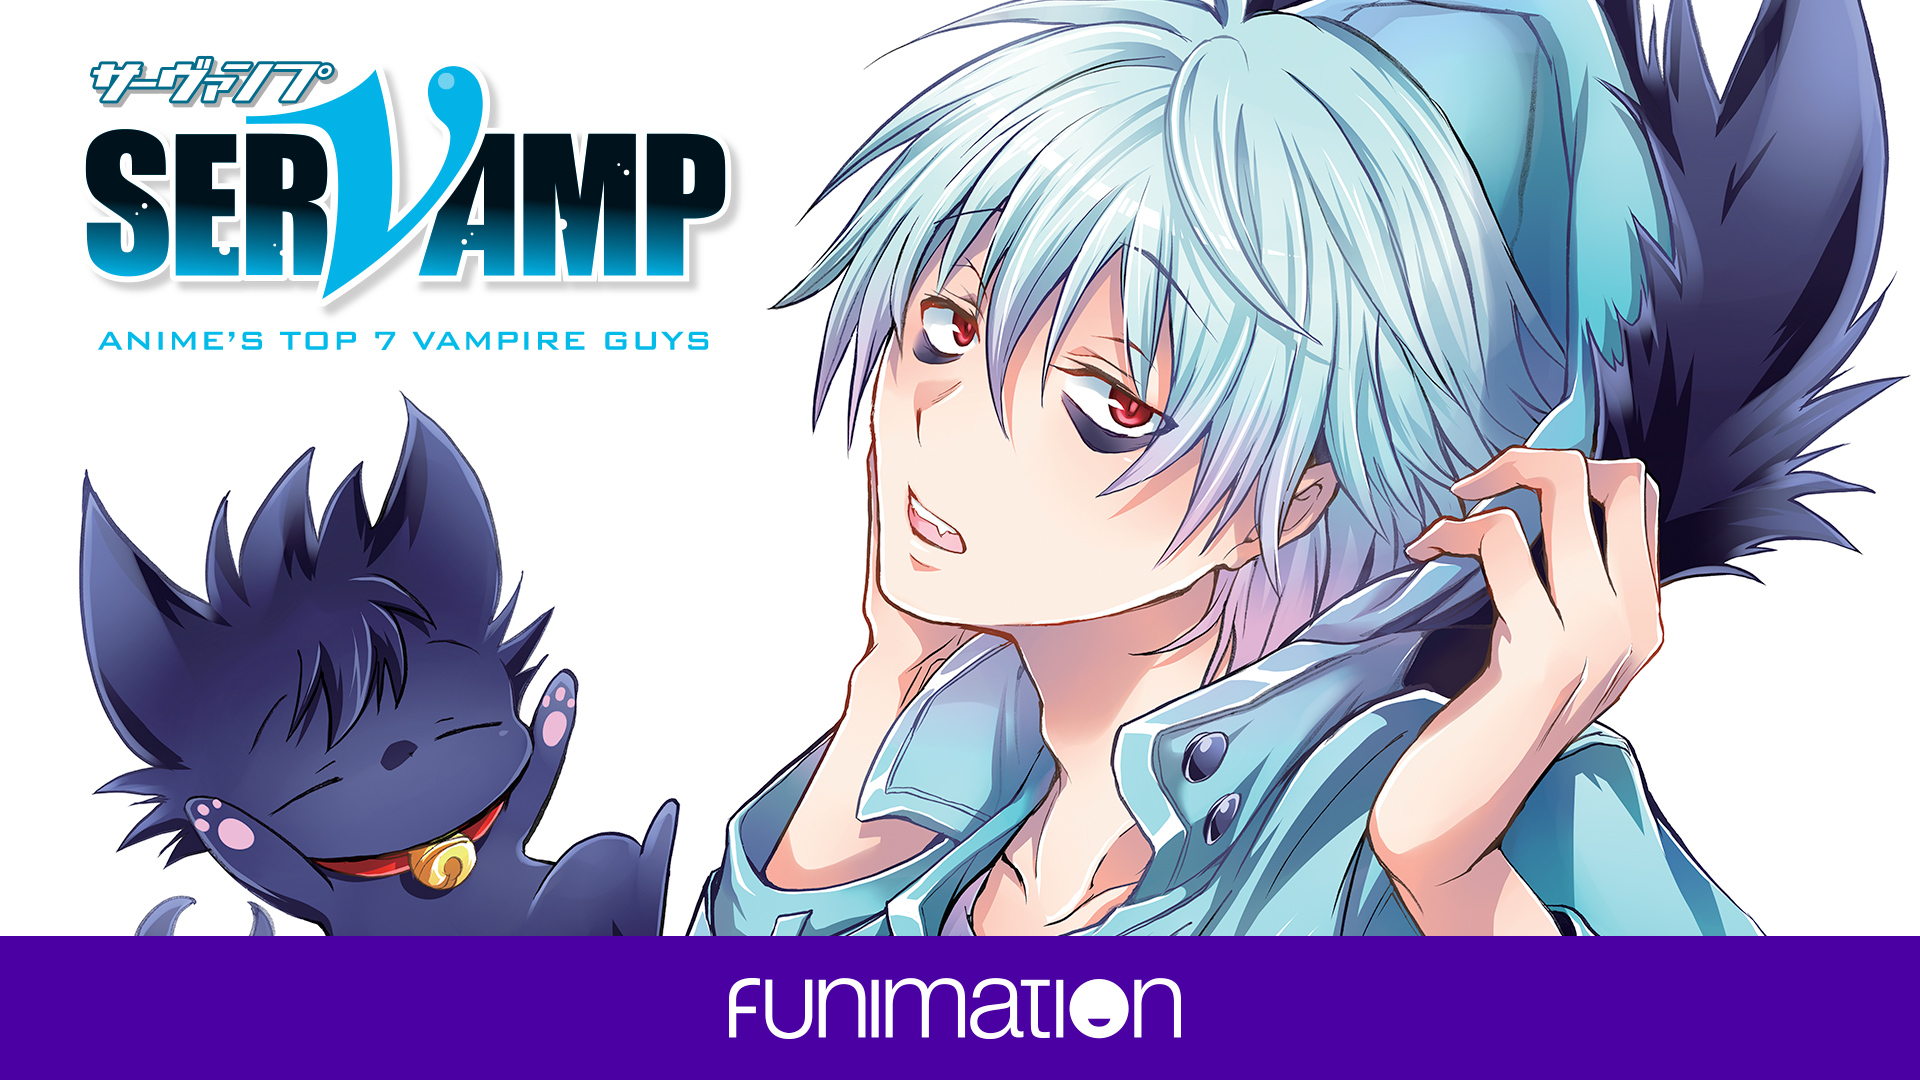 All Vampire Animes seraph of the end: vampire reign archives - funimation - blog!